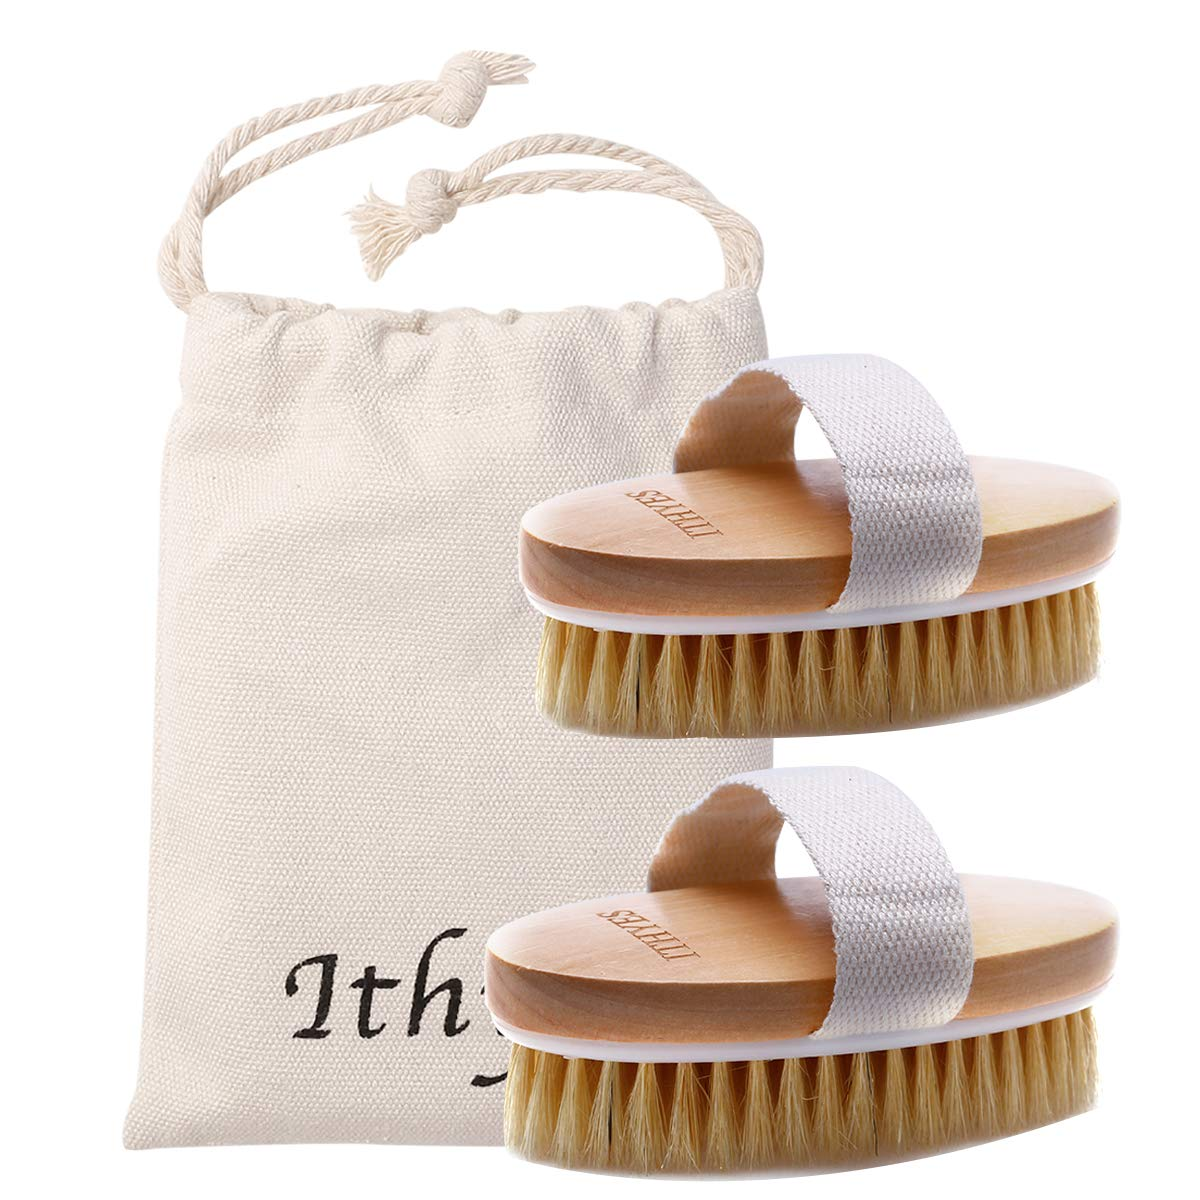 Super Special SALE held 2PCS Manufacturer regenerated product Ithyes Dry Brushing Body Exfoliating Brush Natural Br